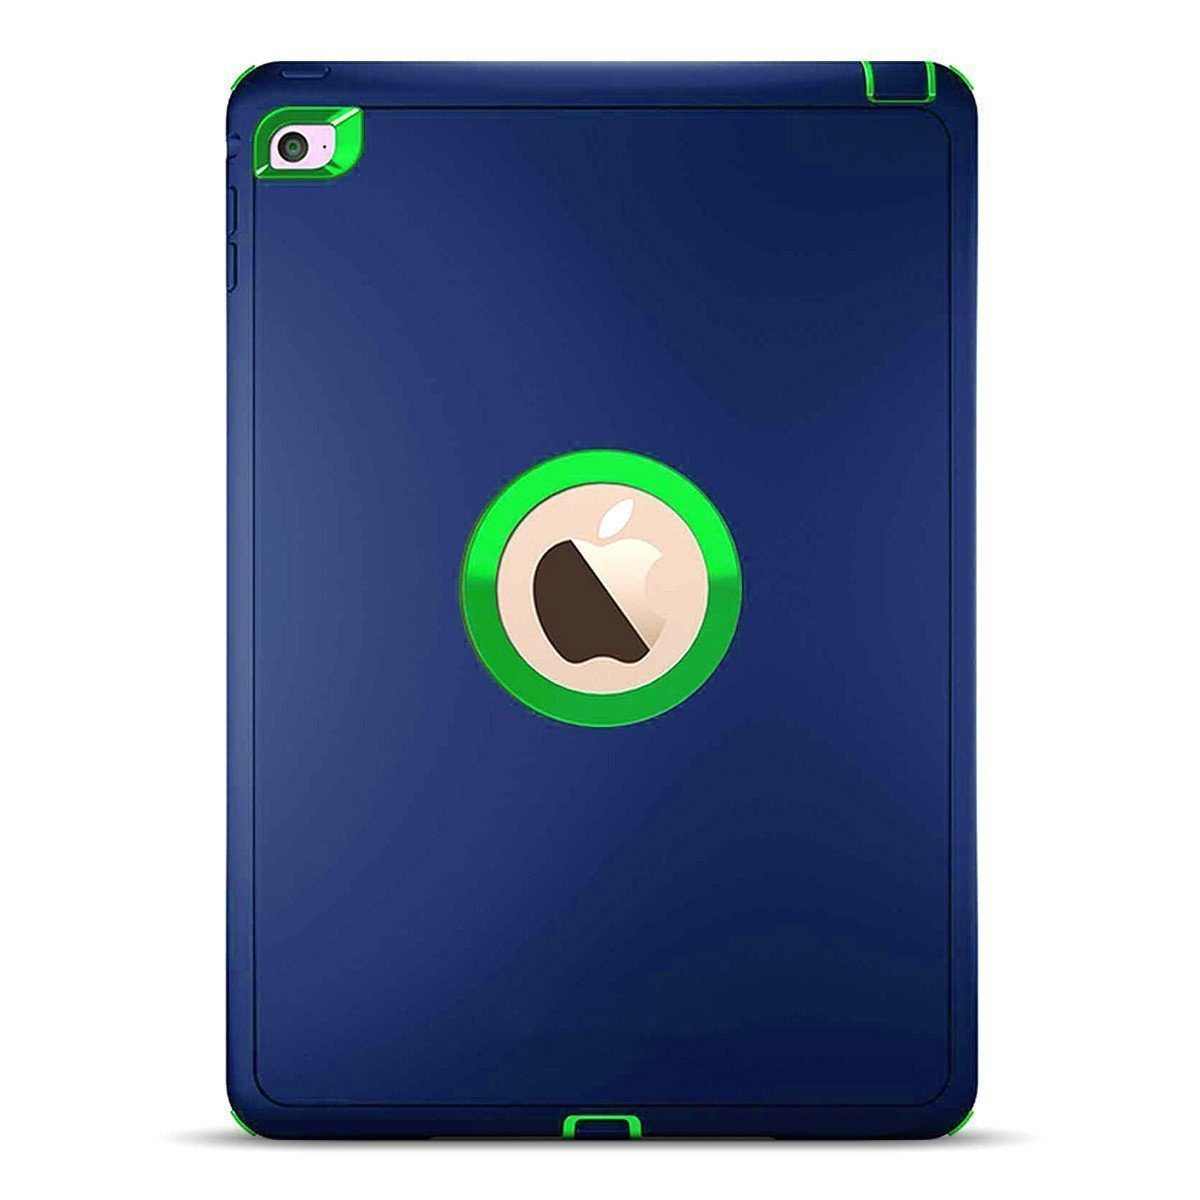 DualPro Protector for iPad Mini 3 - Dark Blue & Green